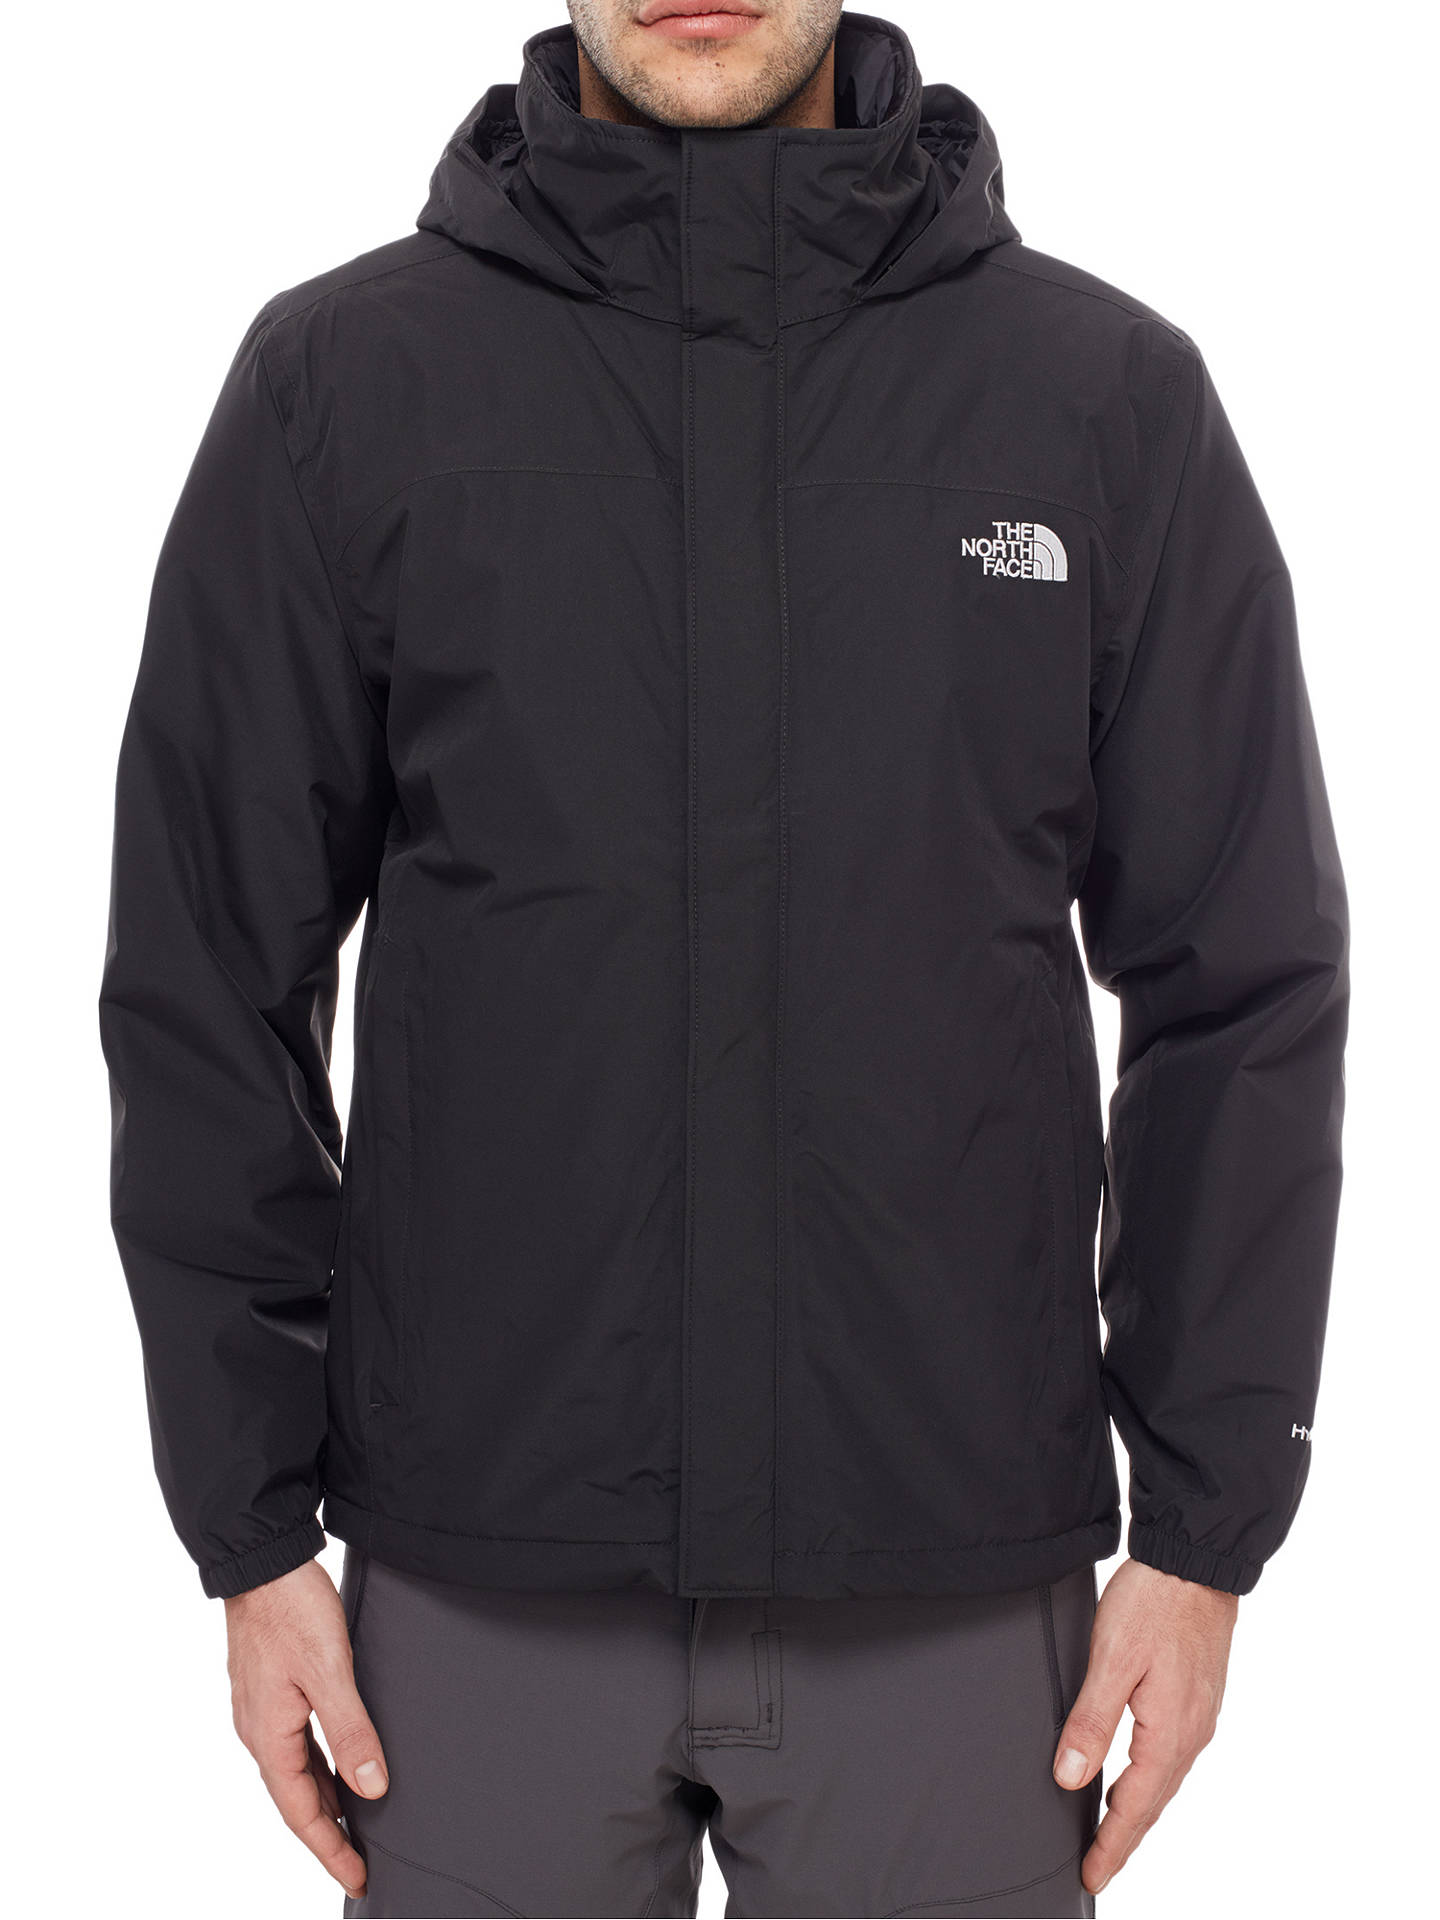 449ac02e The North Face Resolve Insulated Waterproof Men's Jacket, Black